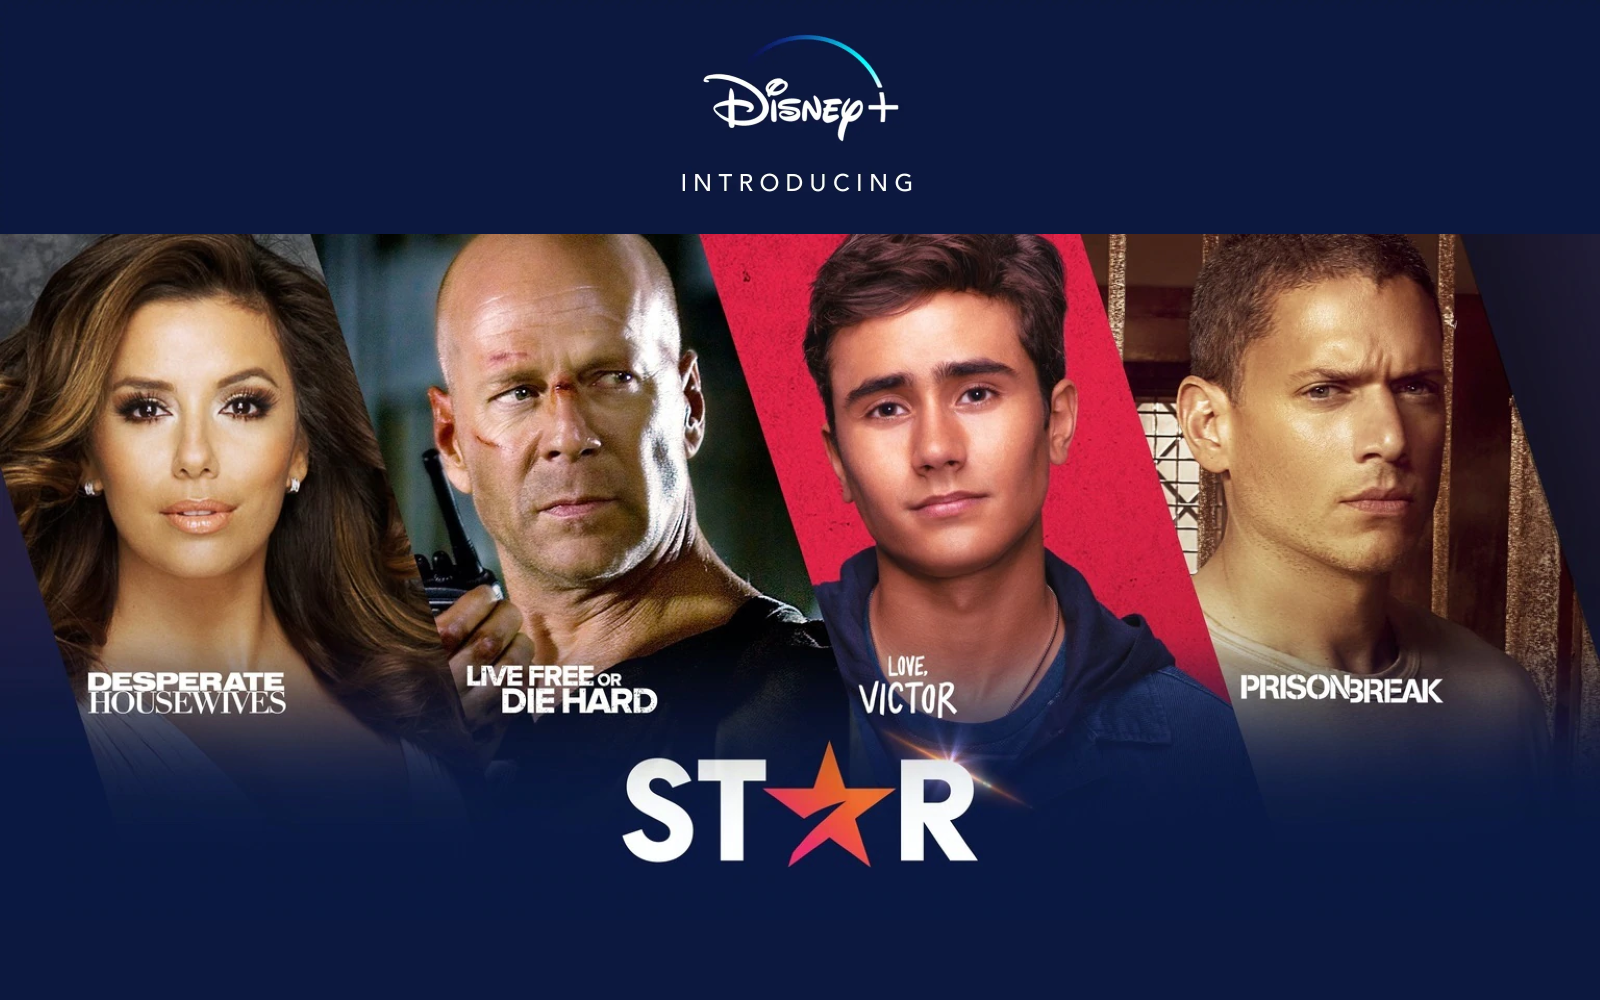 Star Coming To Disney+ In February